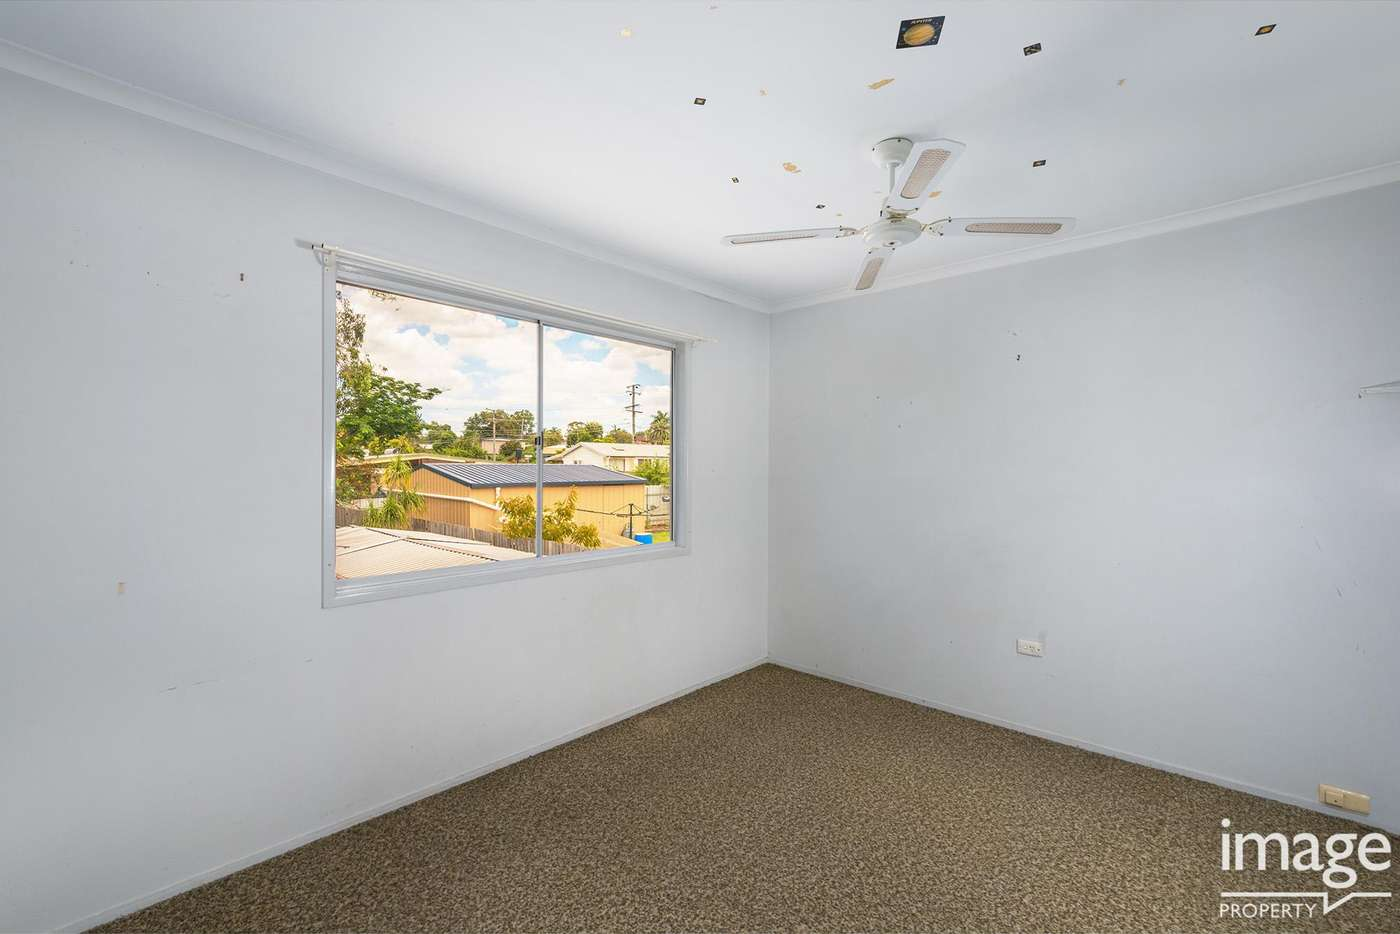 Seventh view of Homely house listing, 545 Browns Plains Road, Crestmead QLD 4132